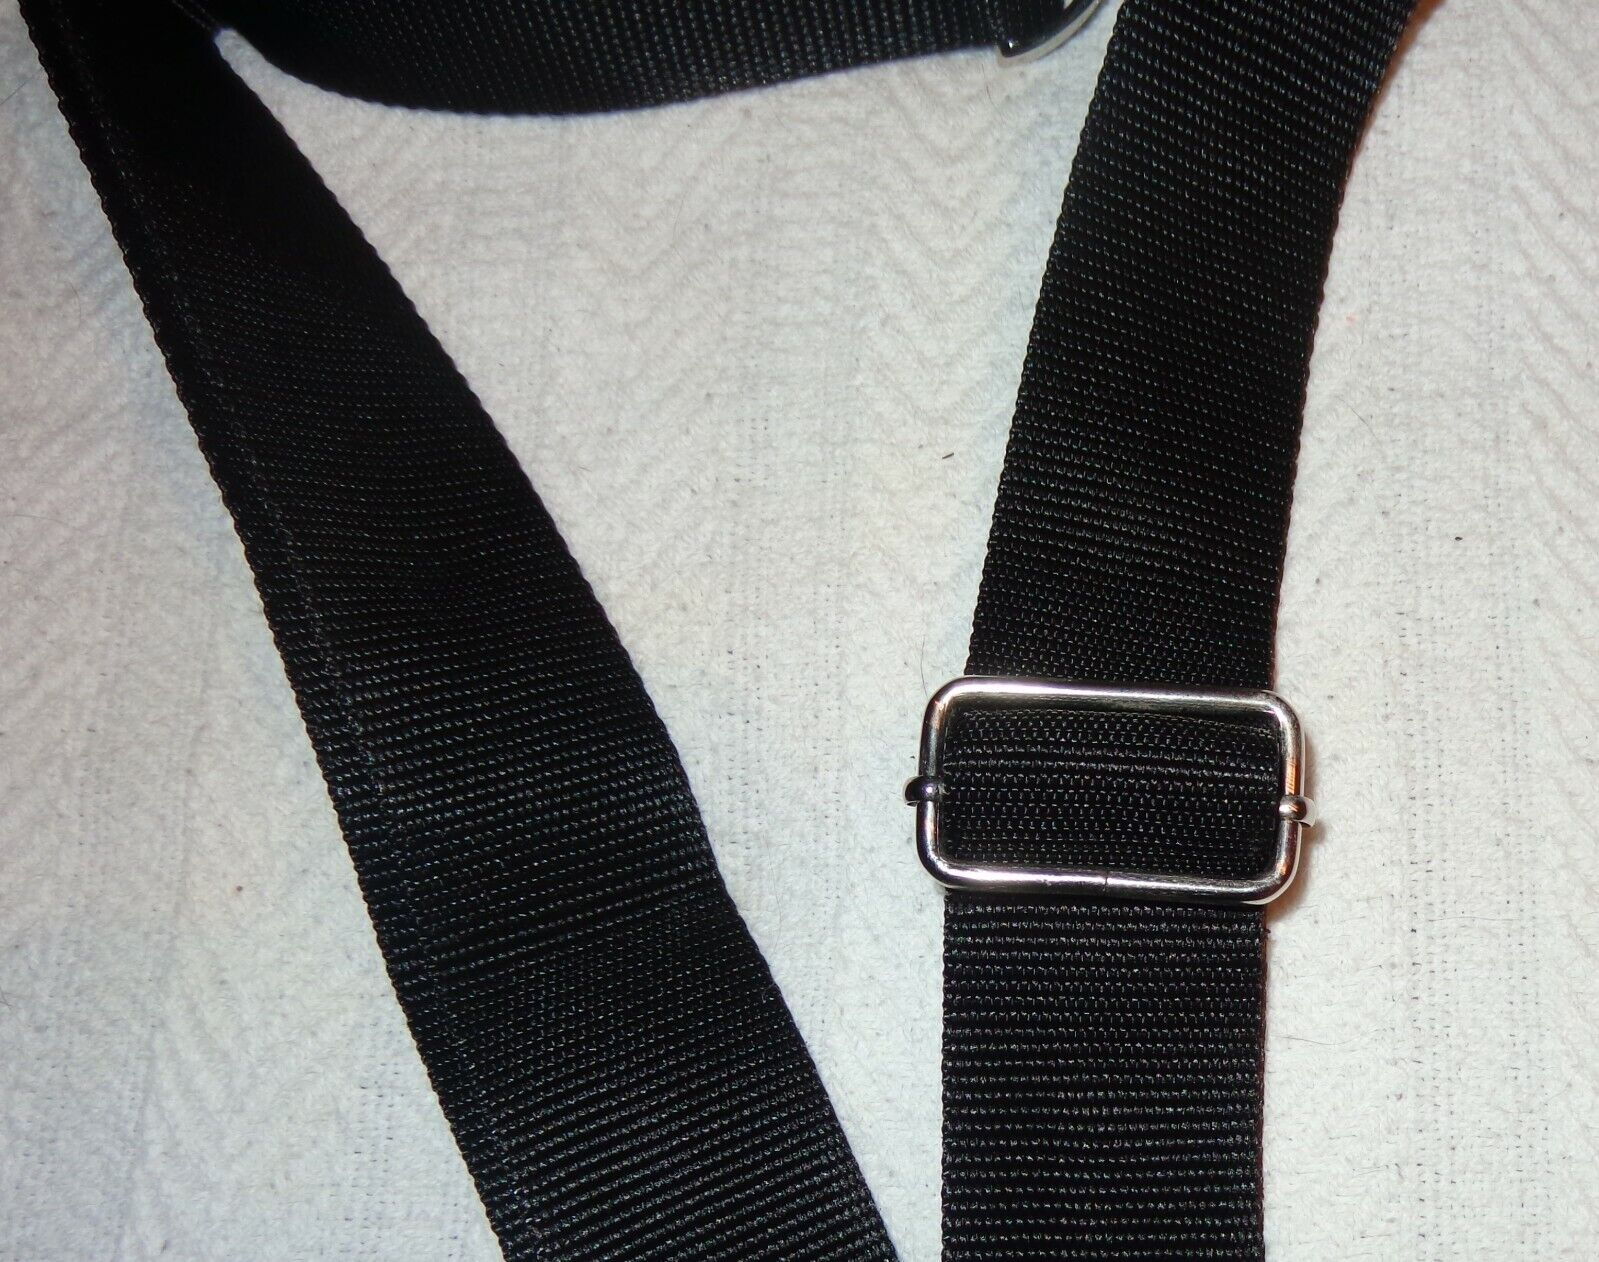 New Black Adjustable Polyester Replacement Shoulder Strap W/ Metal Swivel Hooks - $17.50